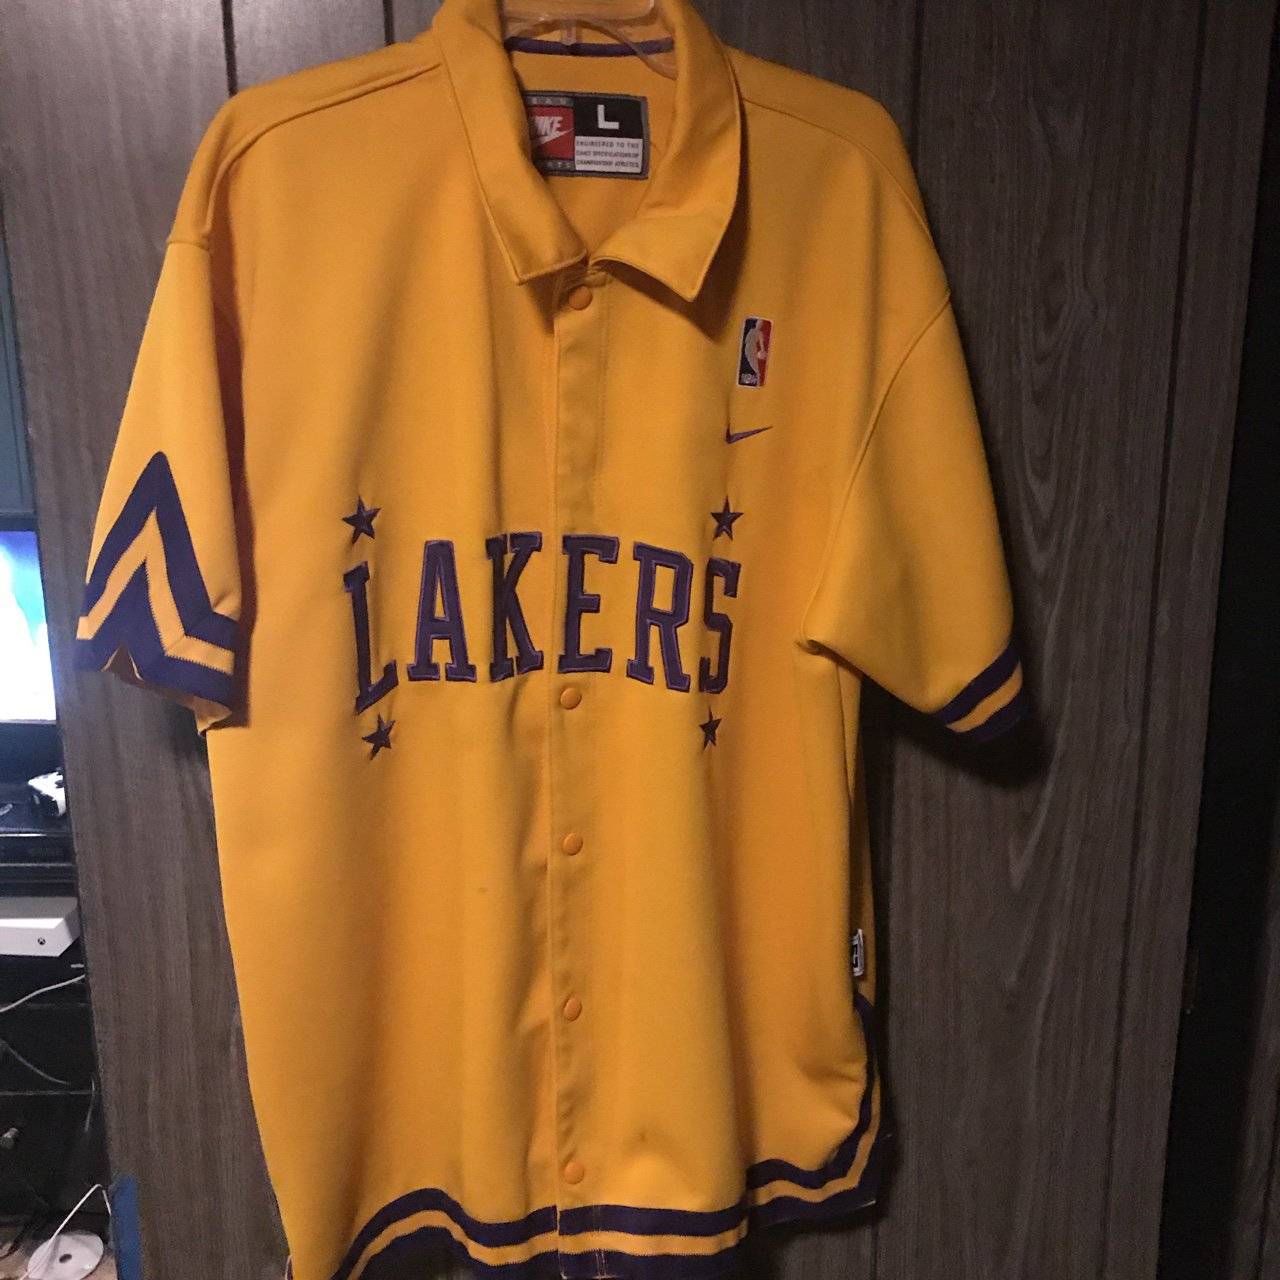 Lakers button up jersey large no real stains official gear - Depop 83aa69bdb